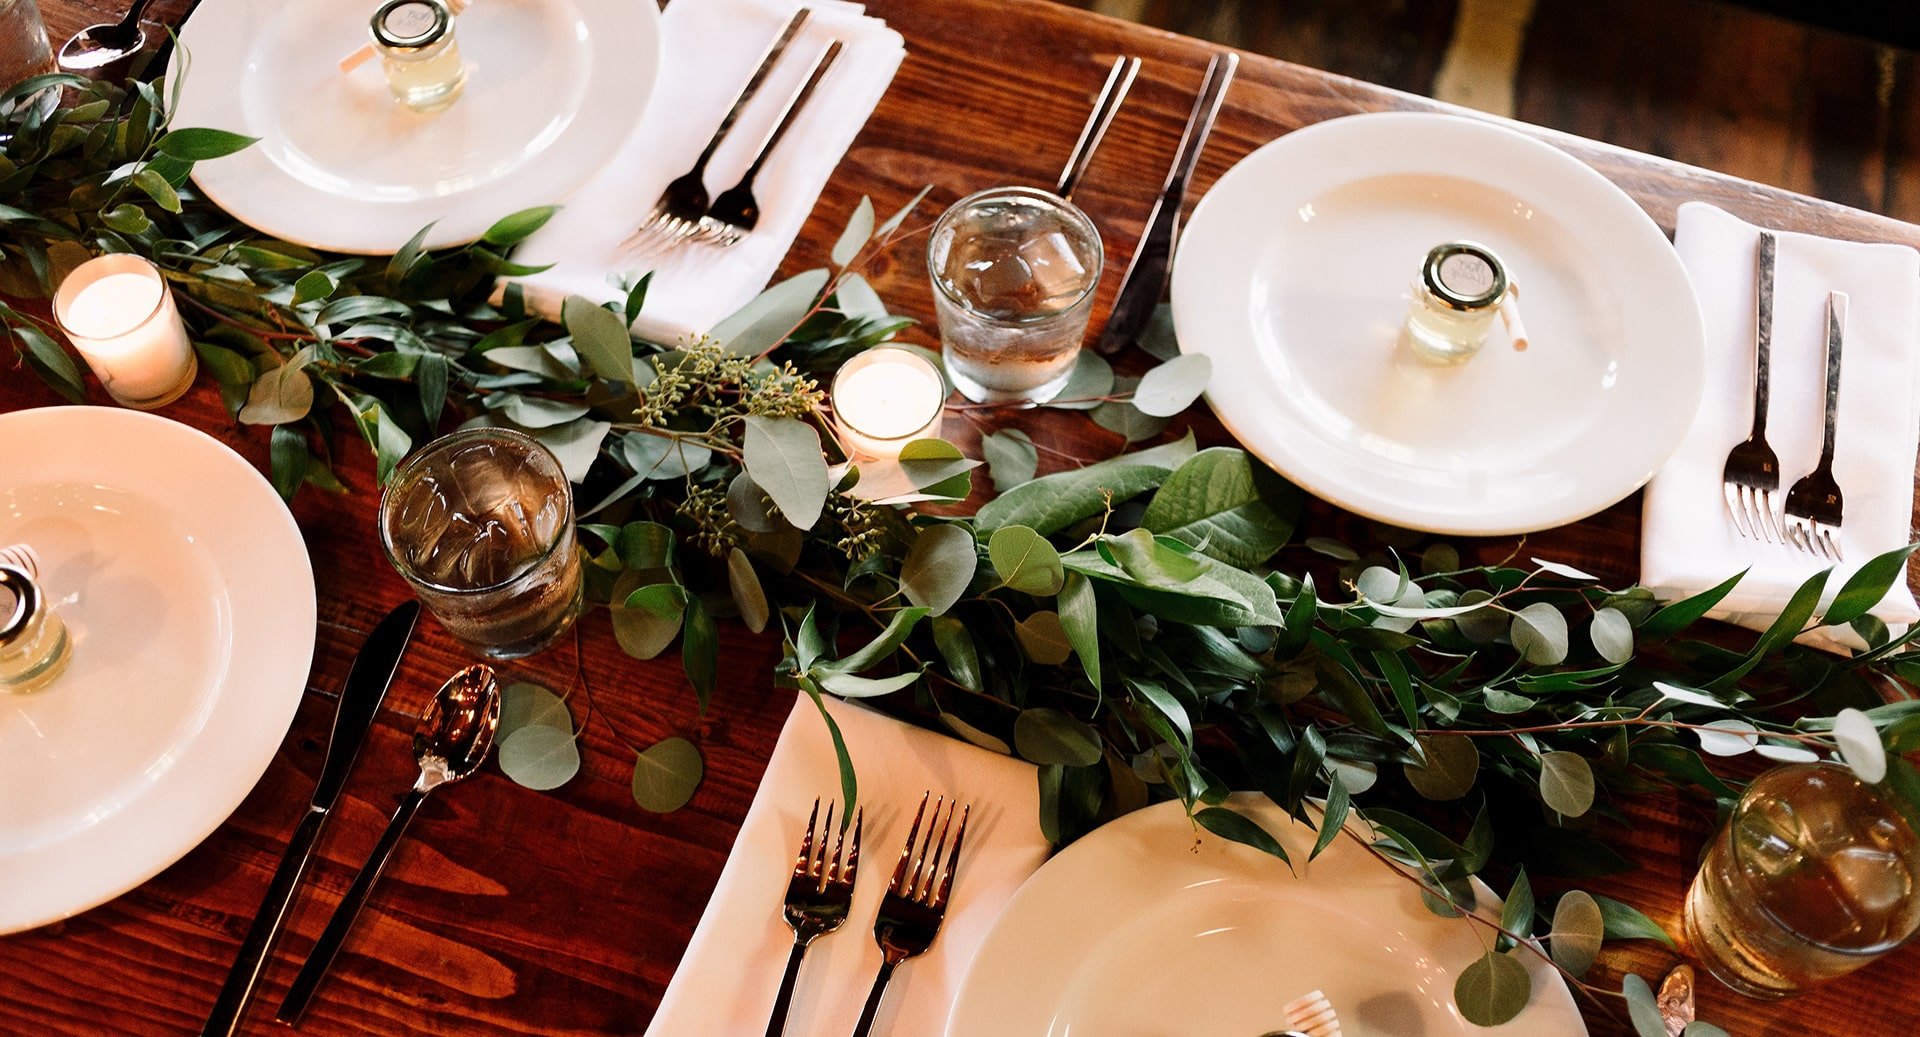 7 Last-Minute Holiday Hosting Tips